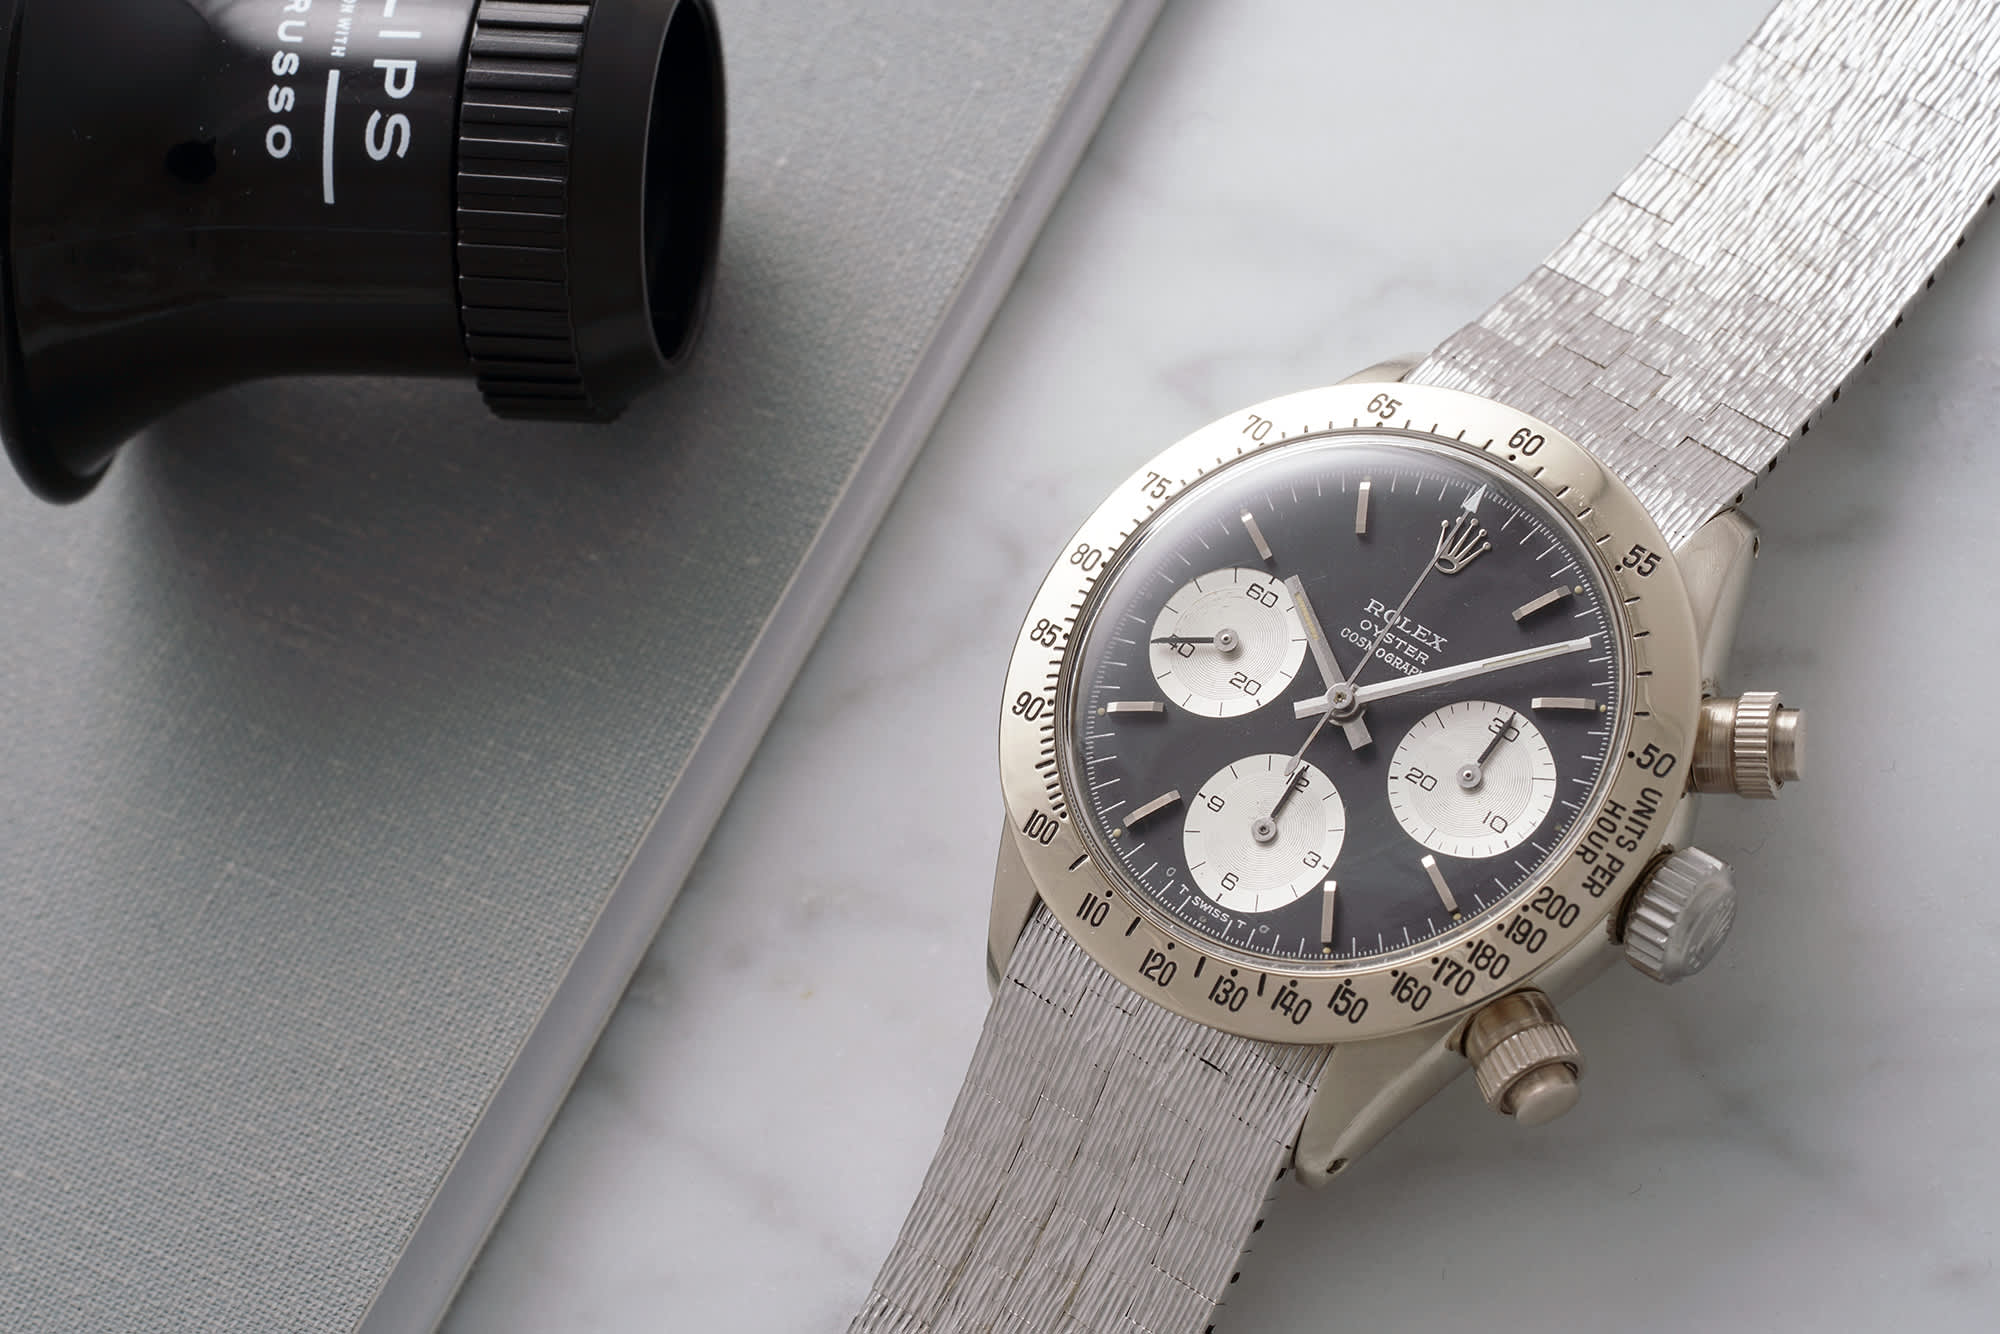 Meet the \u0027Unicorn\u0027 One of the most expensive Rolex watches in the world